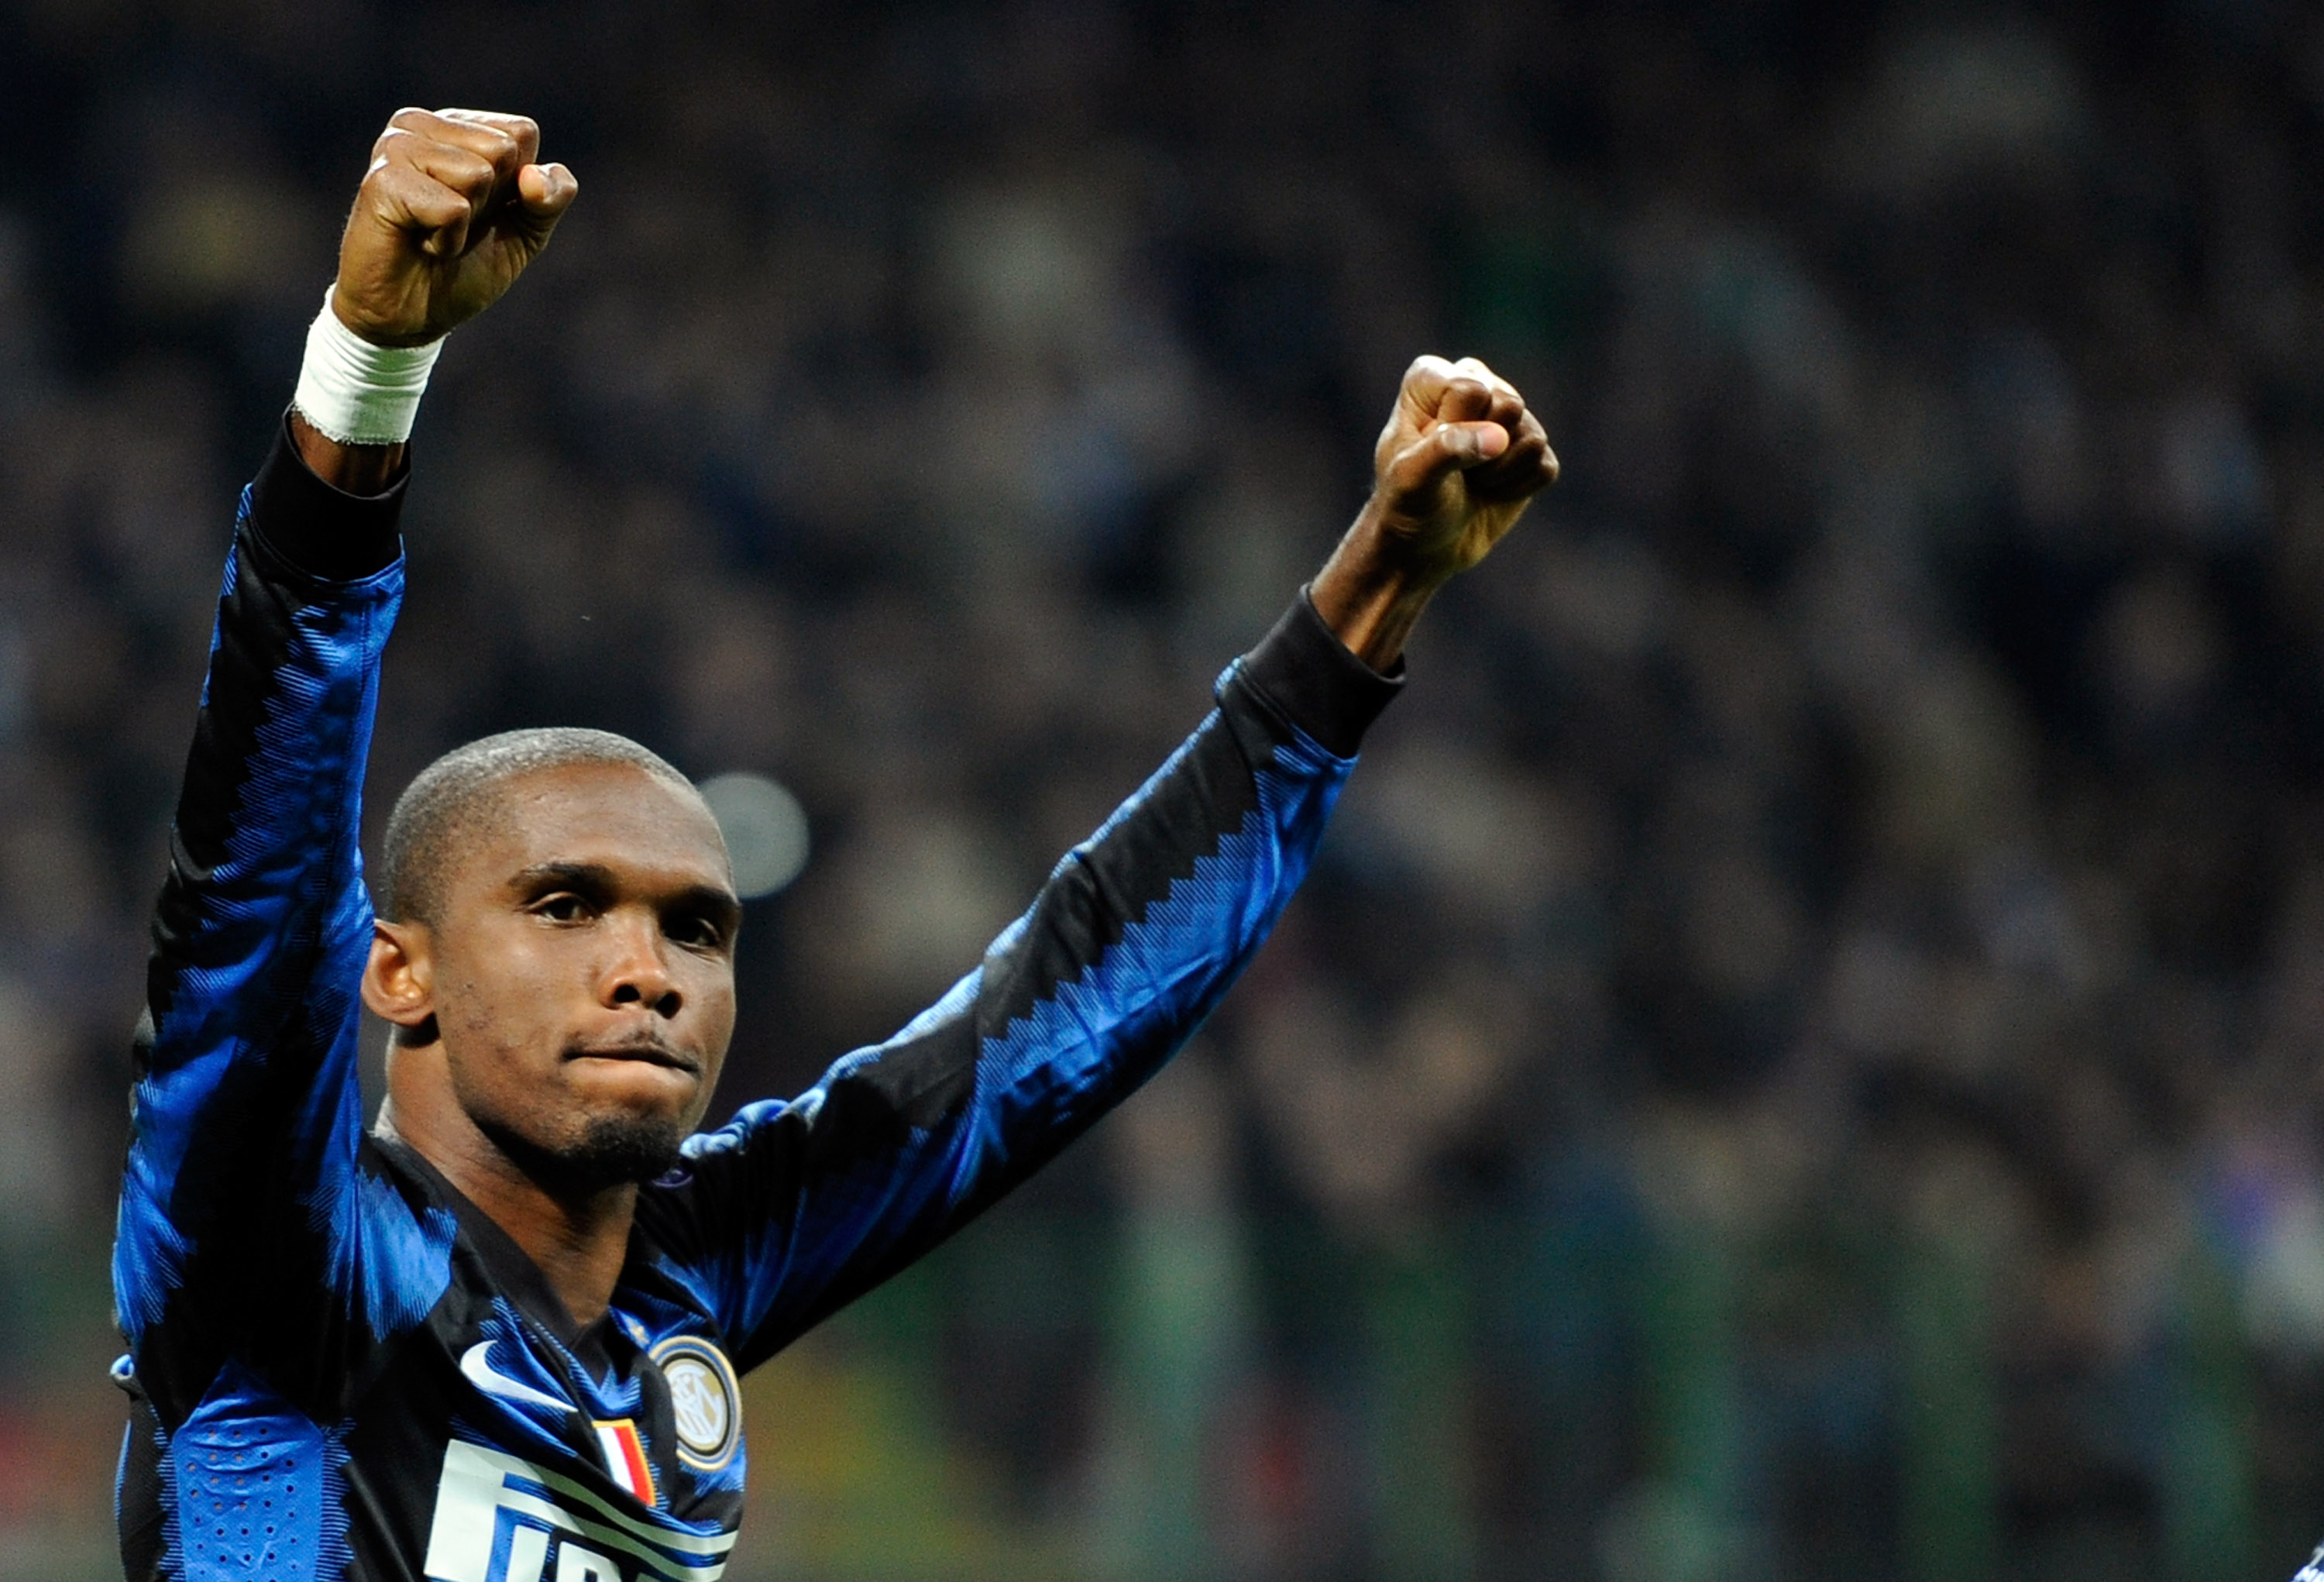 MILAN, ITALY - OCTOBER 20:   Samuel Eto'o of Inter Milan celebrates after the fourth goal during the UEFA Champions League group A match between FC Internazionale Milano and Tottenham Hotspur at Stadio Giuseppe Meazza on October 20, 2010 in Milan, Italy.